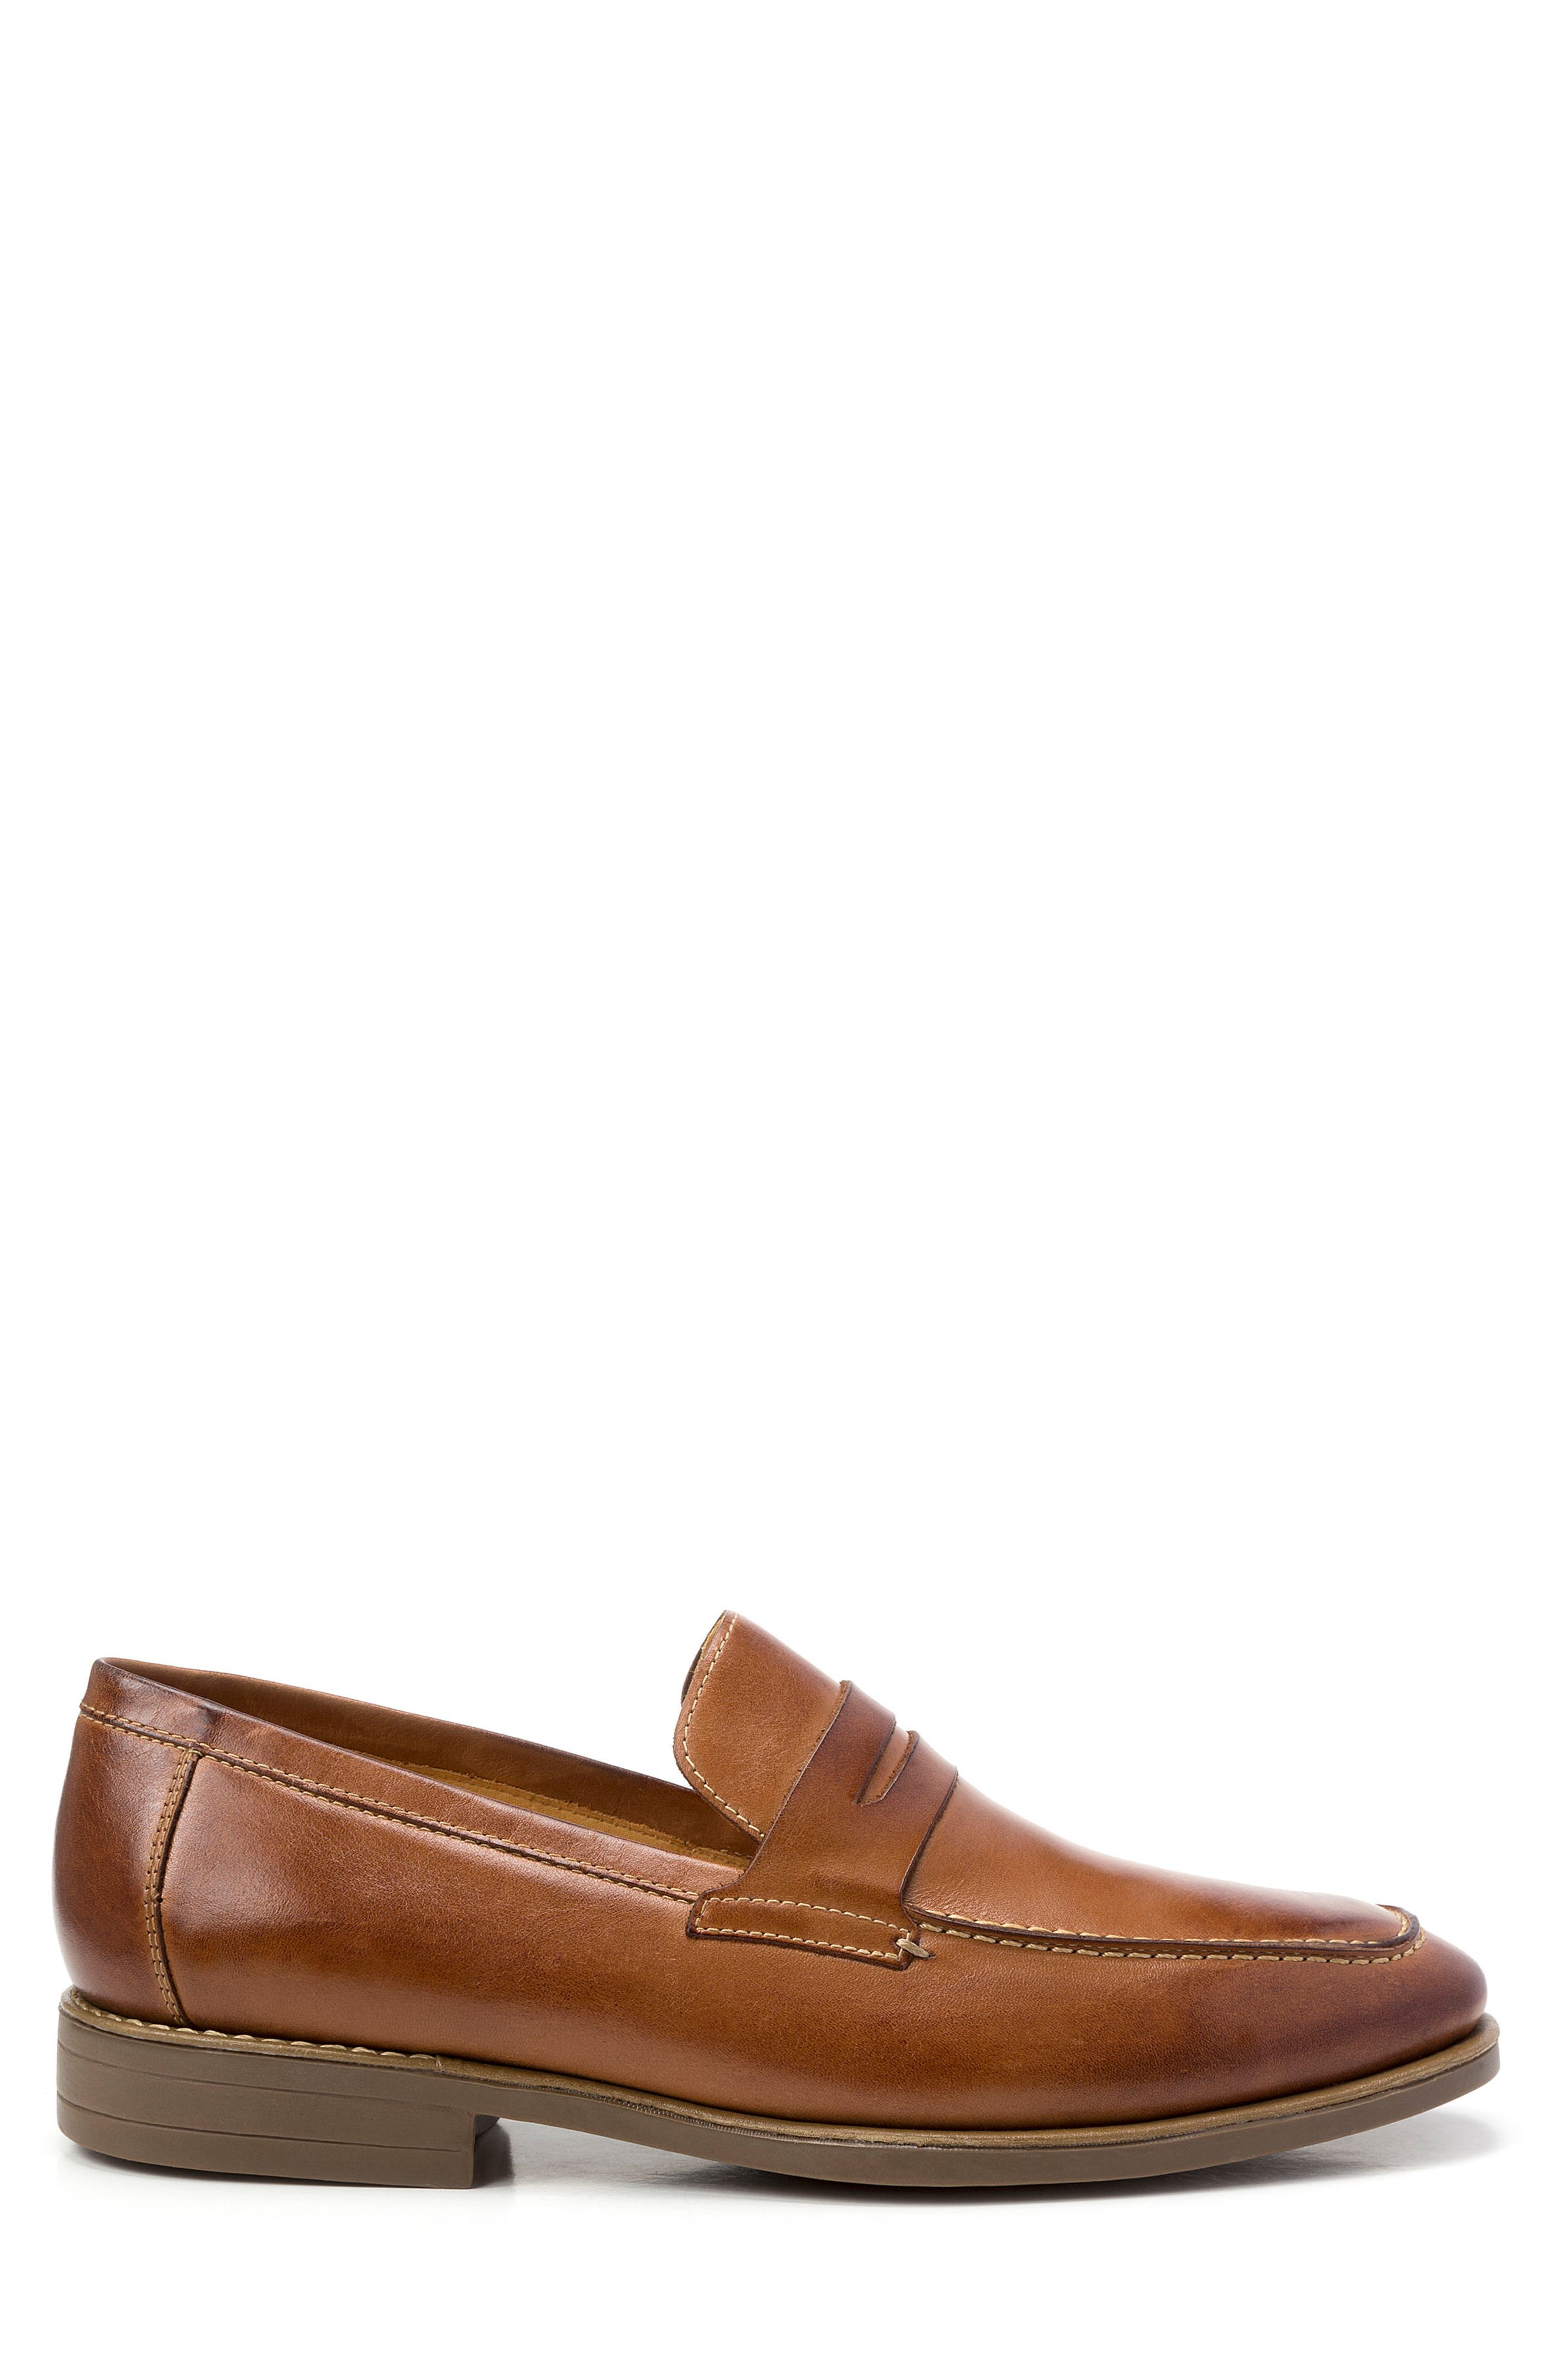 Murray Penny Loafer,                             Alternate thumbnail 3, color,                             TAN